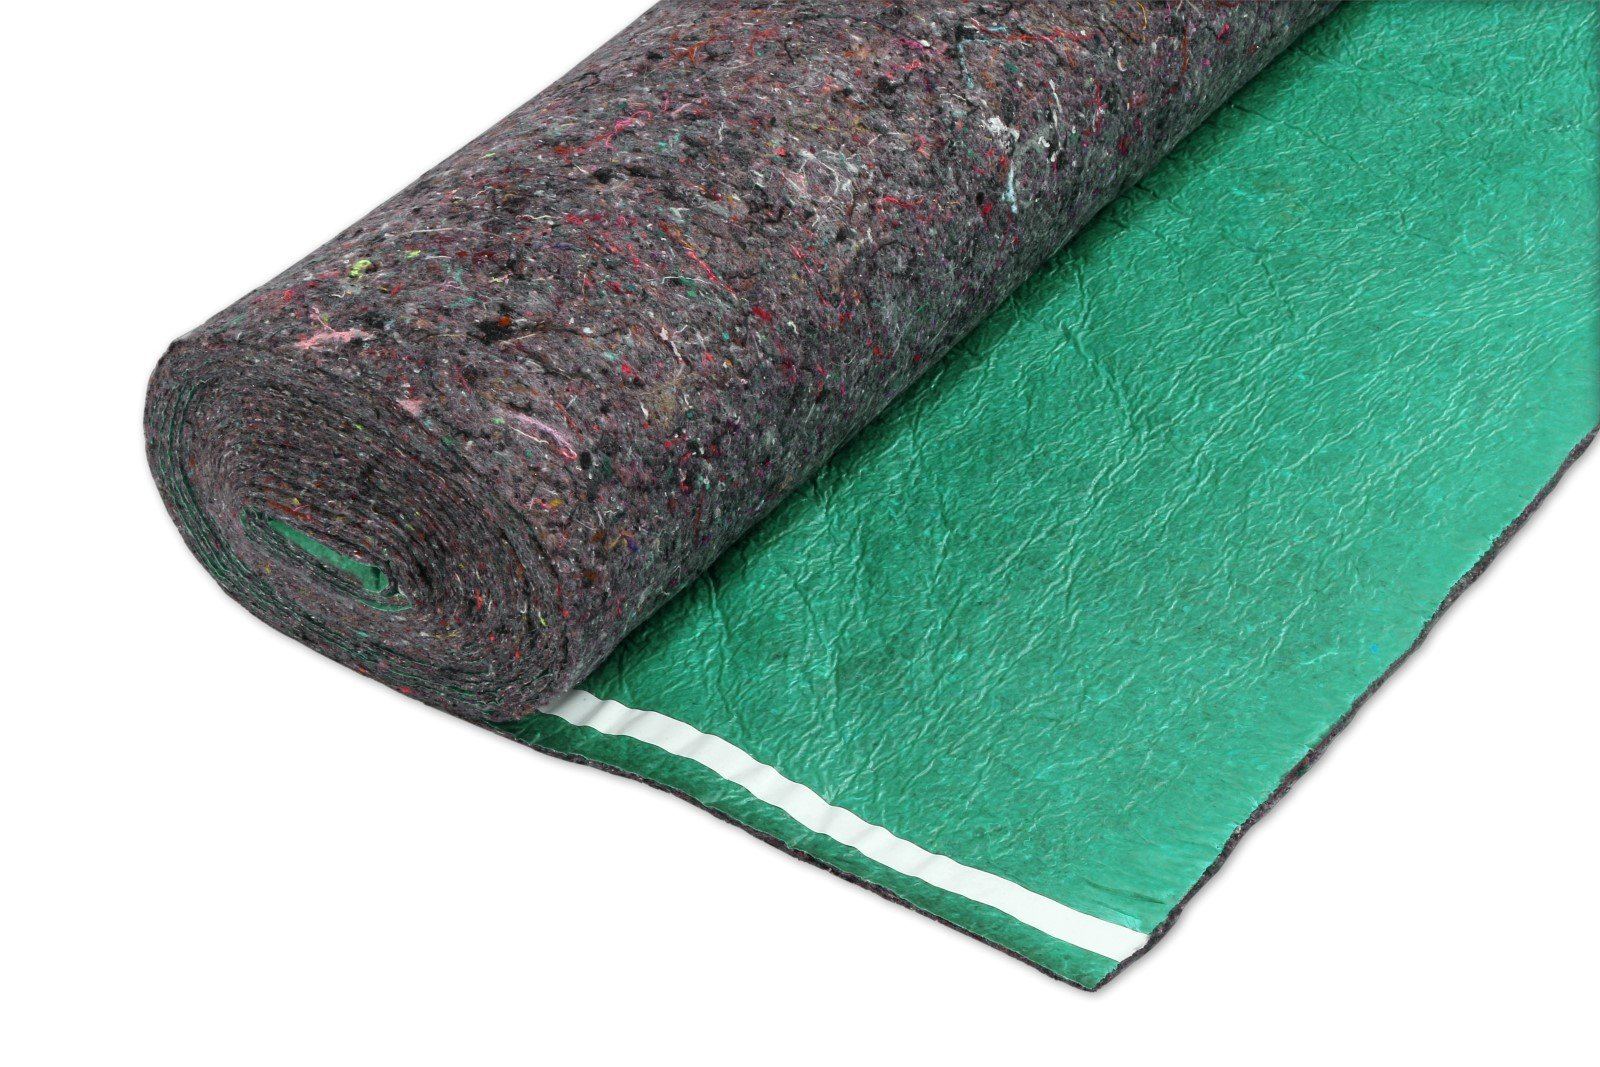 200SQFT 3.5MM AMERIQUE Super Quiet Walk Felt Underlayment Heavy Duty Padding with Vapor Barrier & Tape, Perfect for Hardwood, Bamboo, Floating Floors & Laminate, Bright Green, Pack of 2 by AMERIQUE (Image #4)